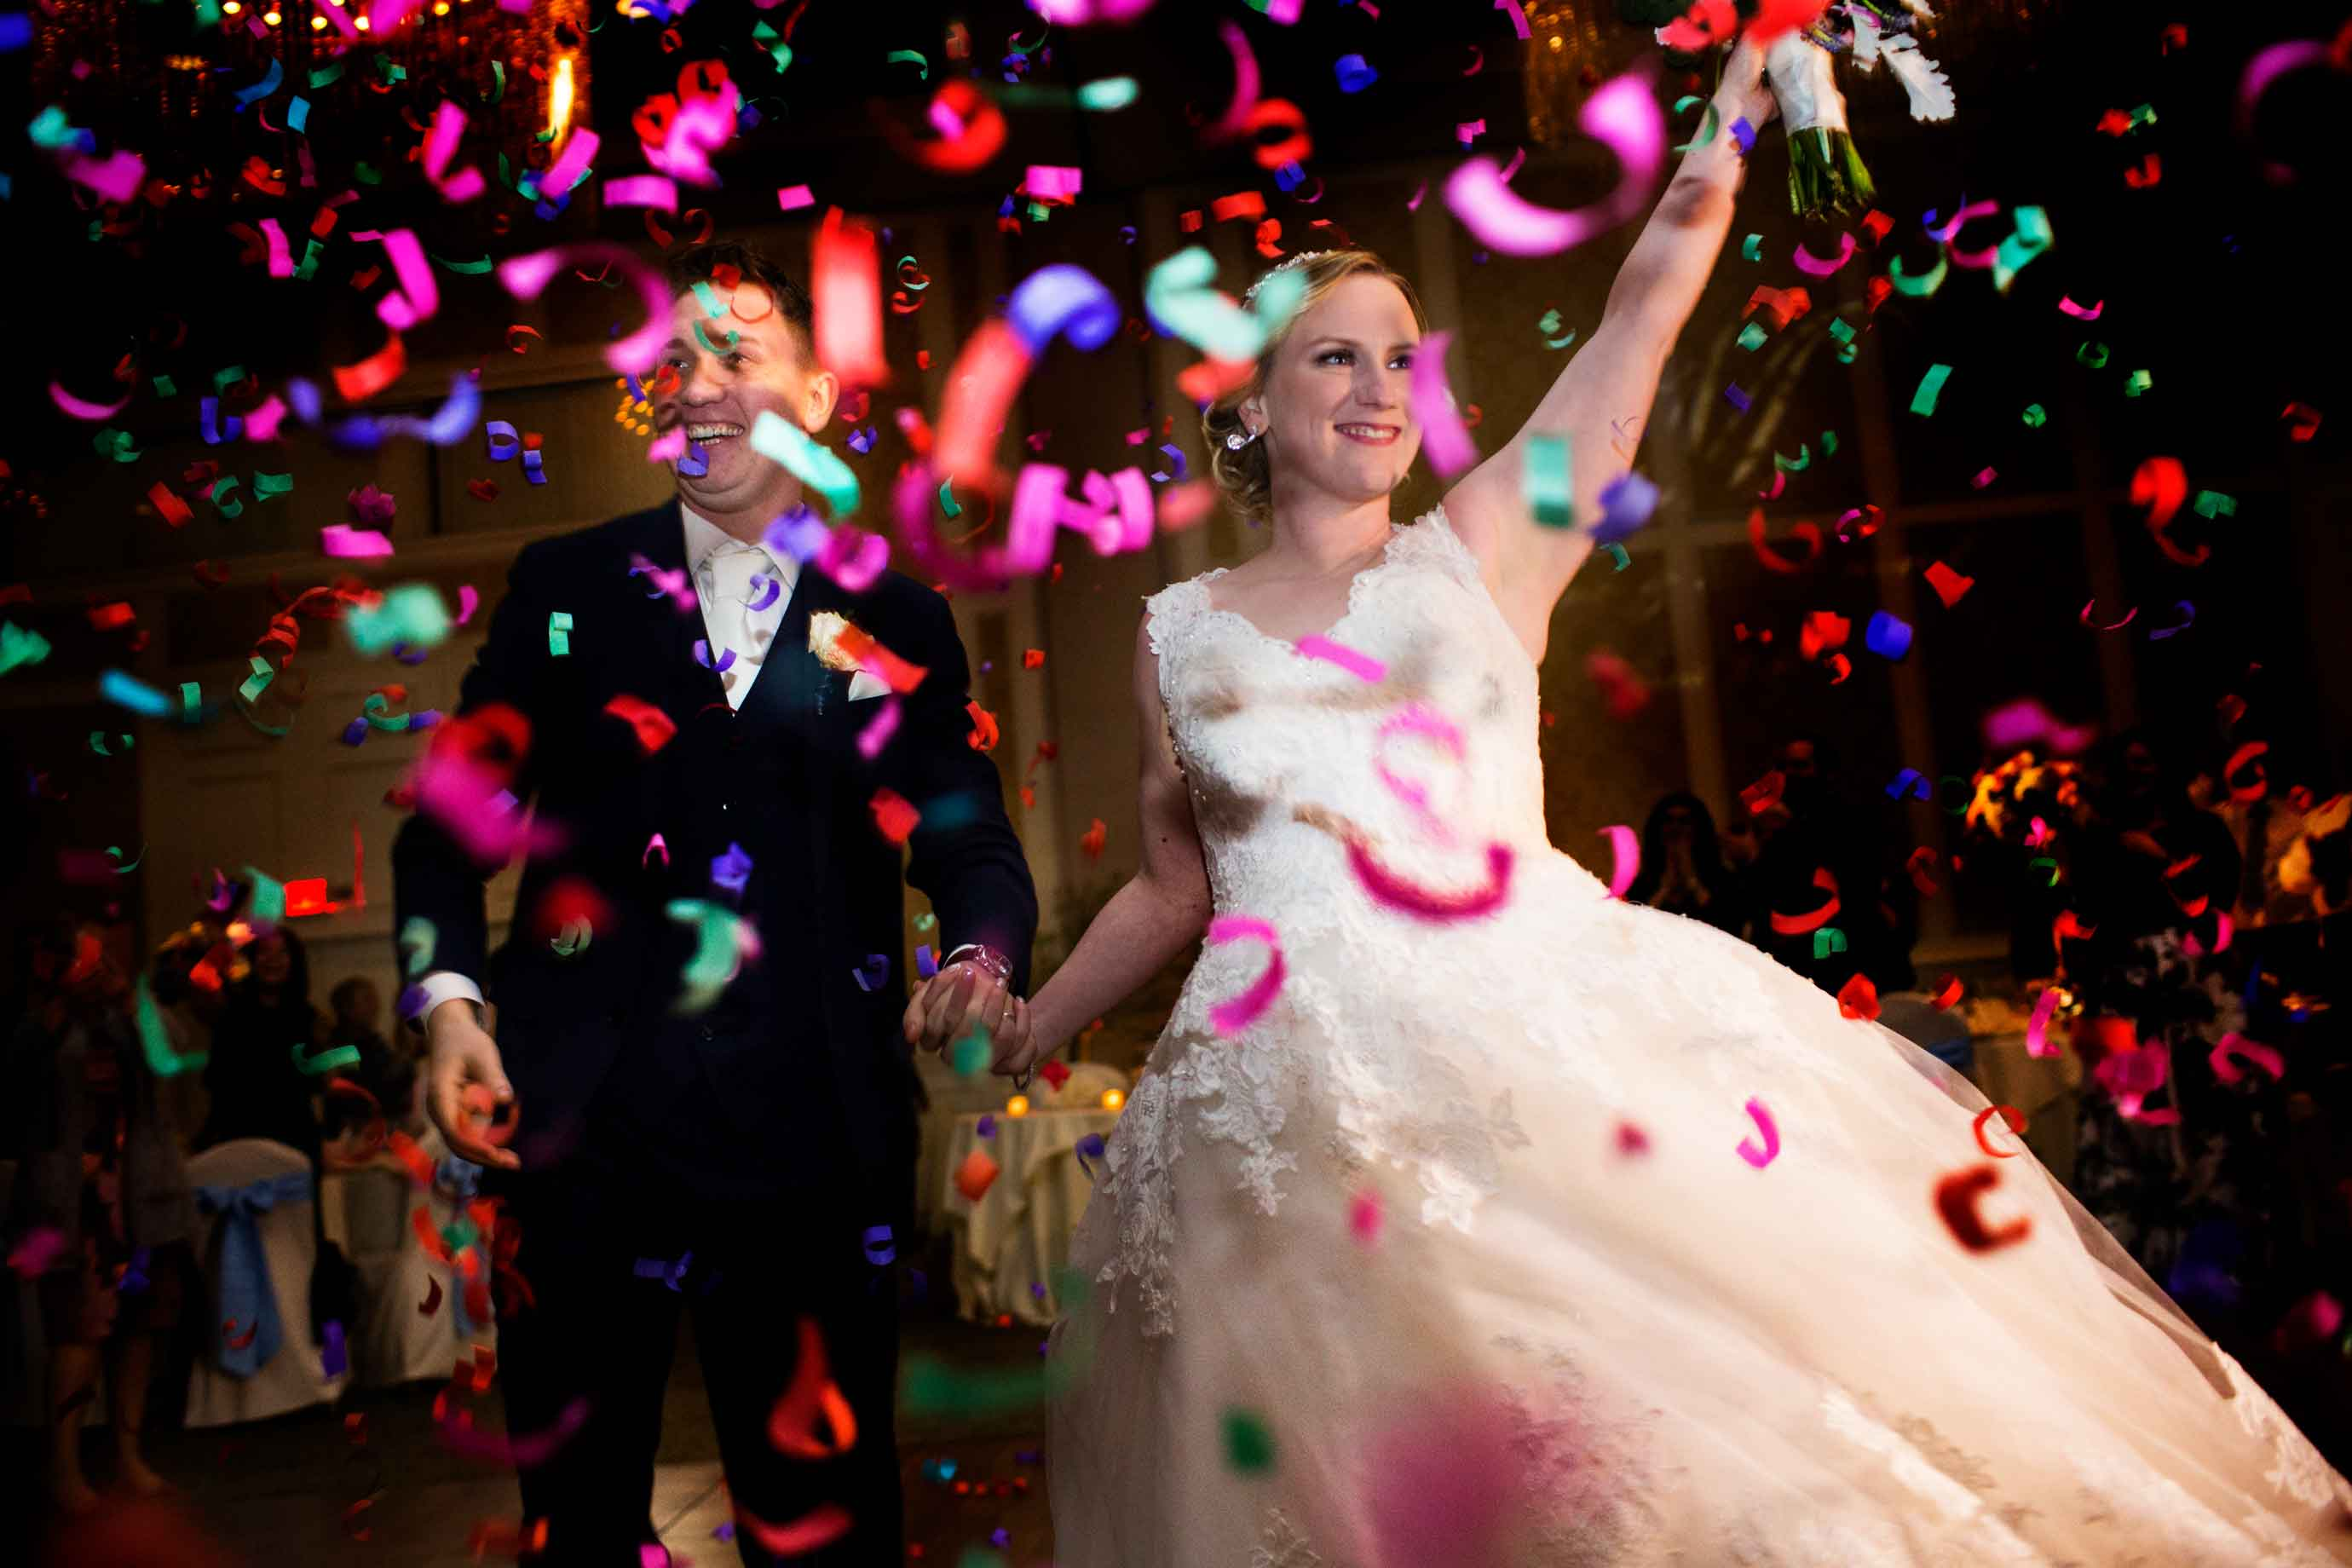 Couple under party confetti - photo by MD photo films